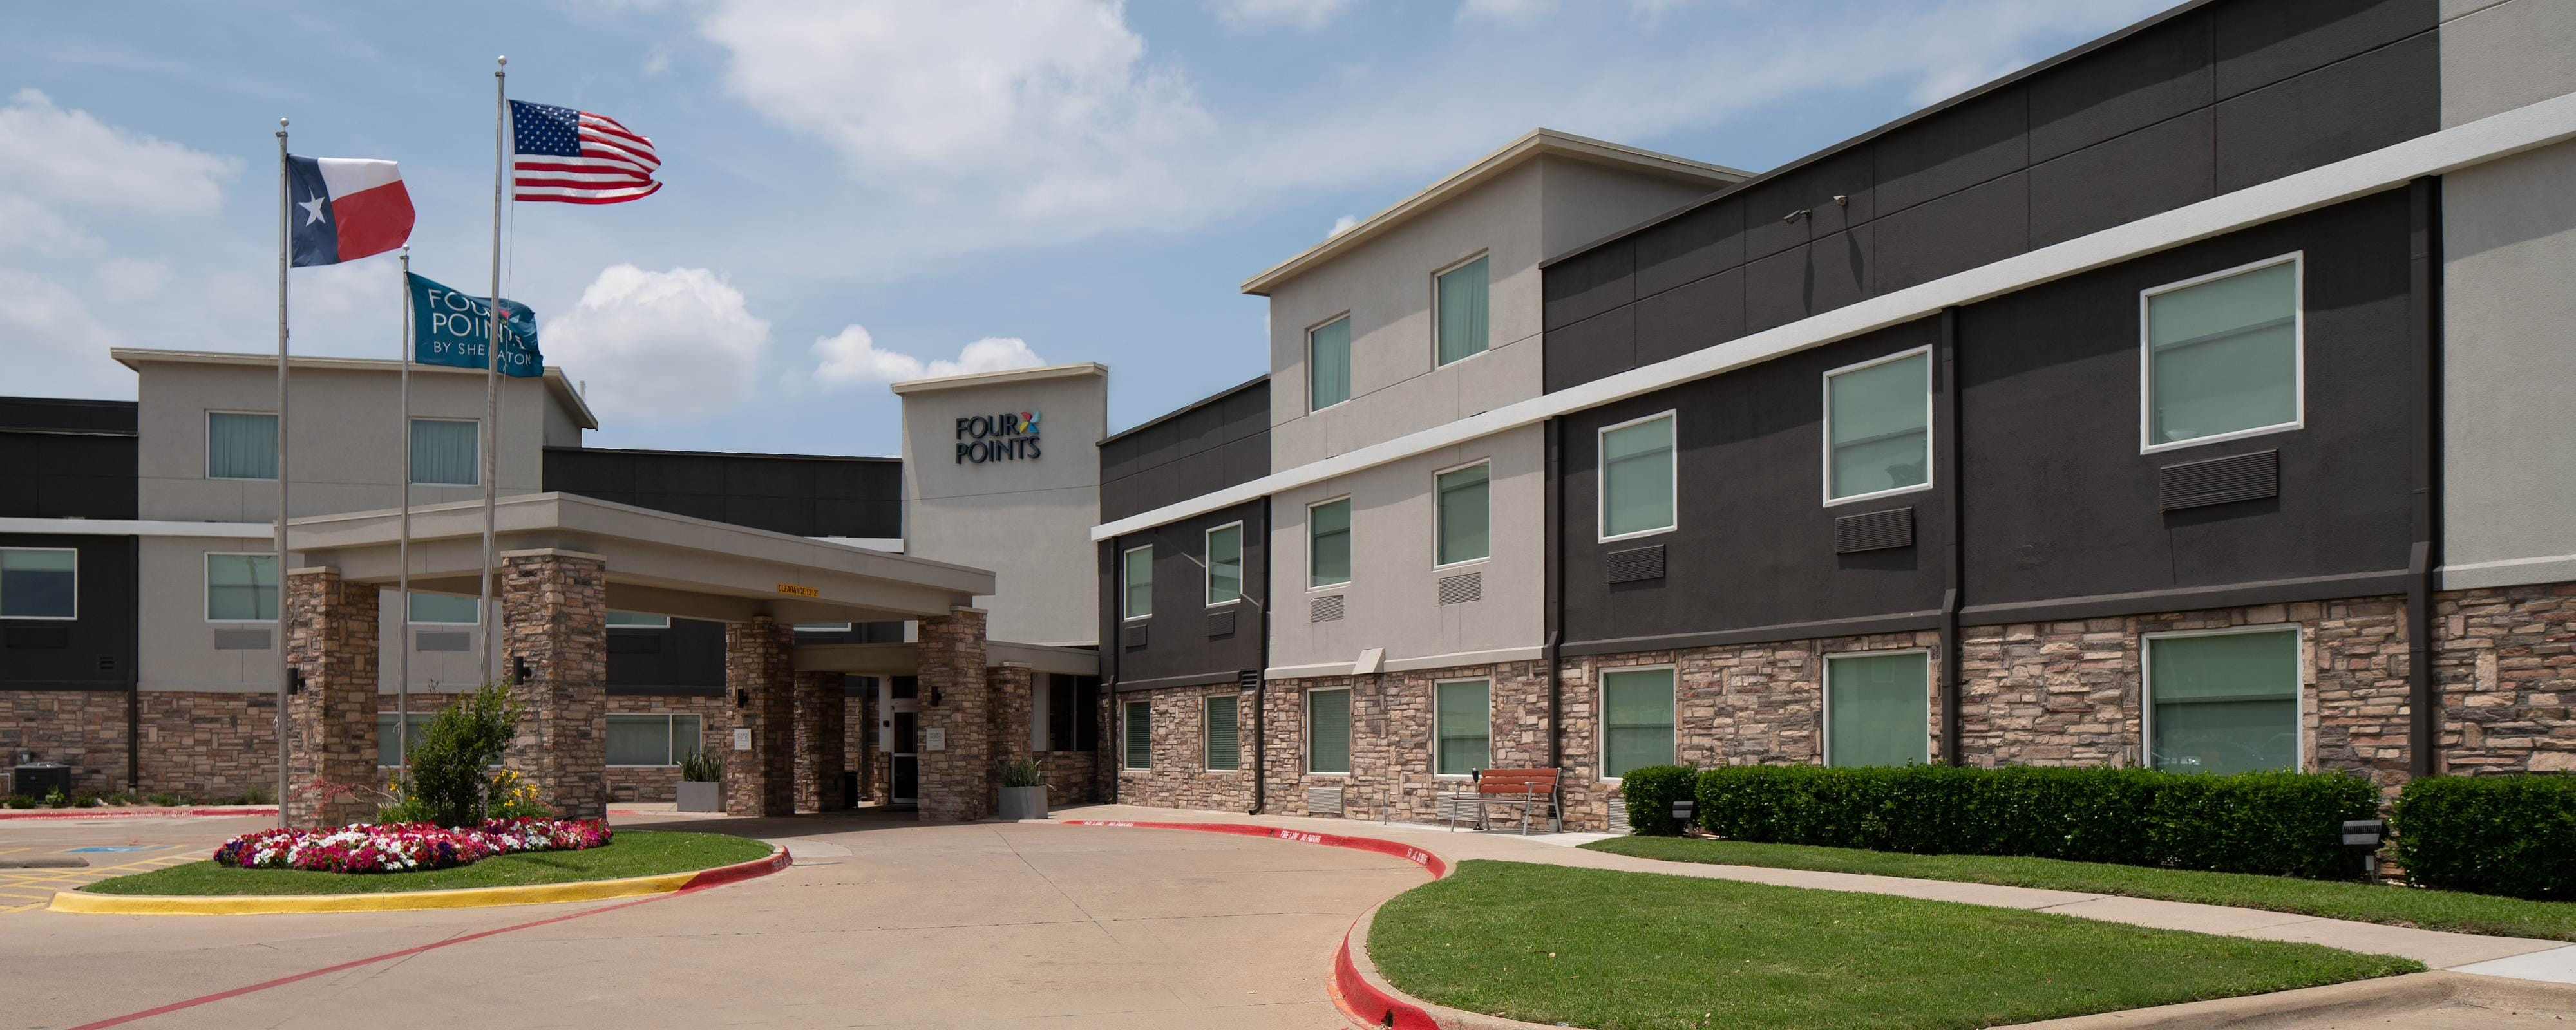 Hotels In Arlington Tx Four Points By Sheraton Dallas